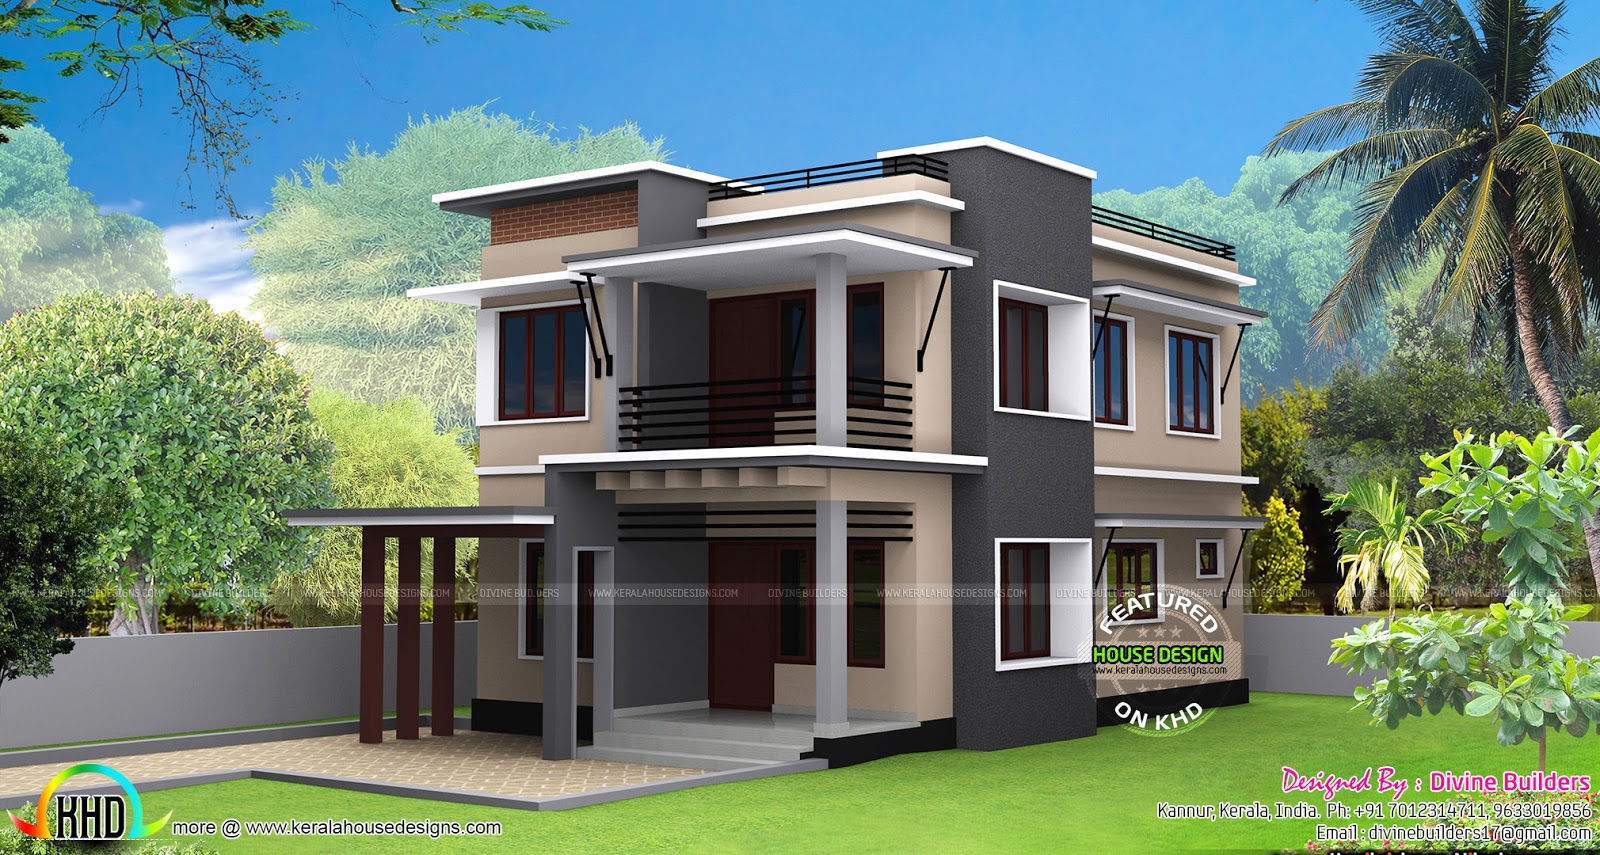 30 lakhs rupees cost estimated modern house kerala home for Modern house cost